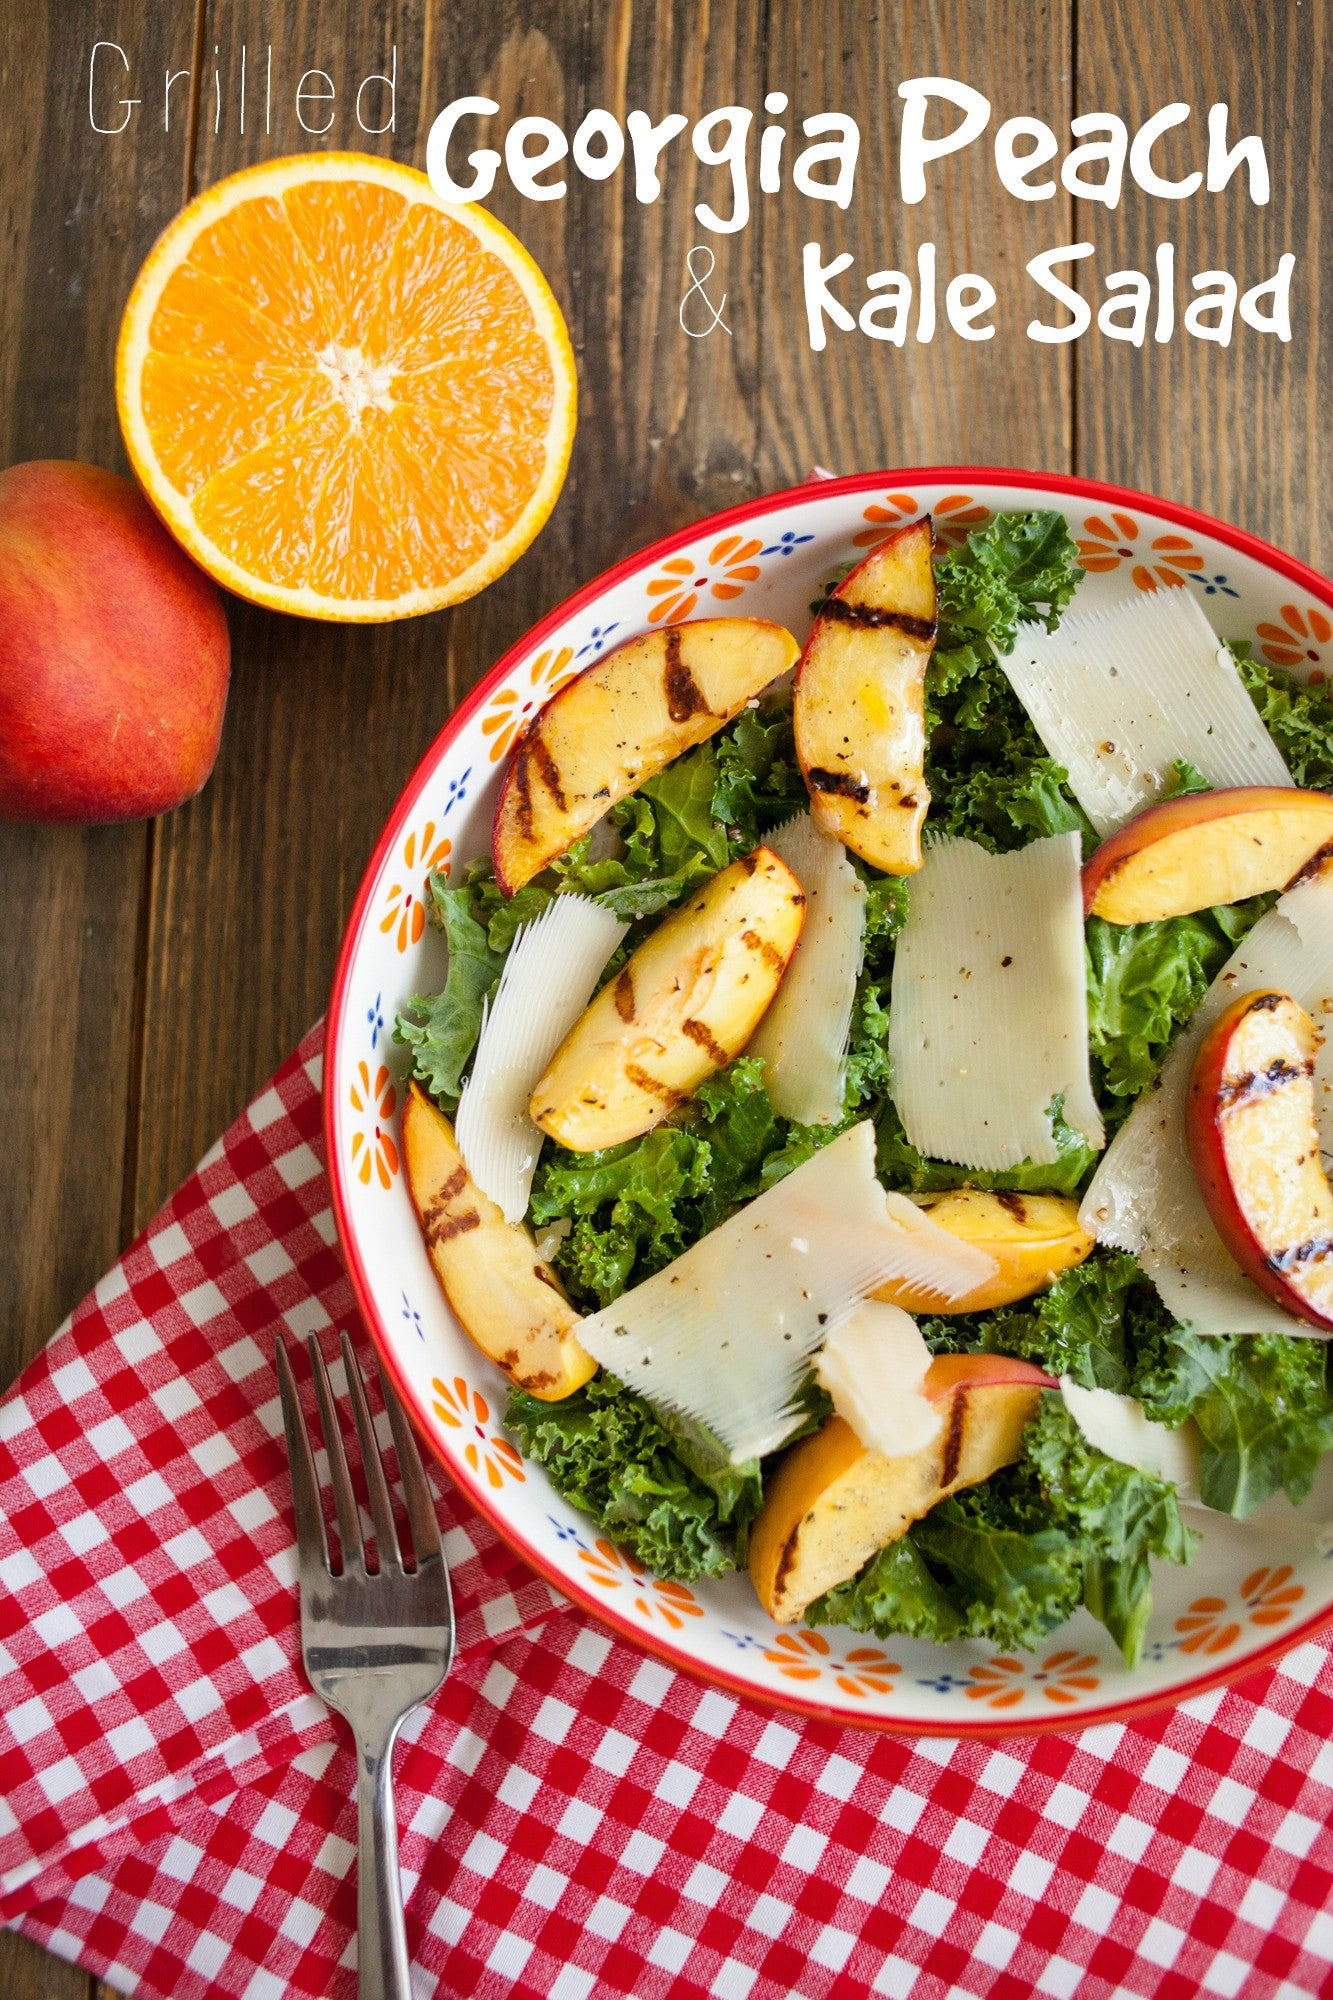 Grilled Georgia Peaches with Kale Salad